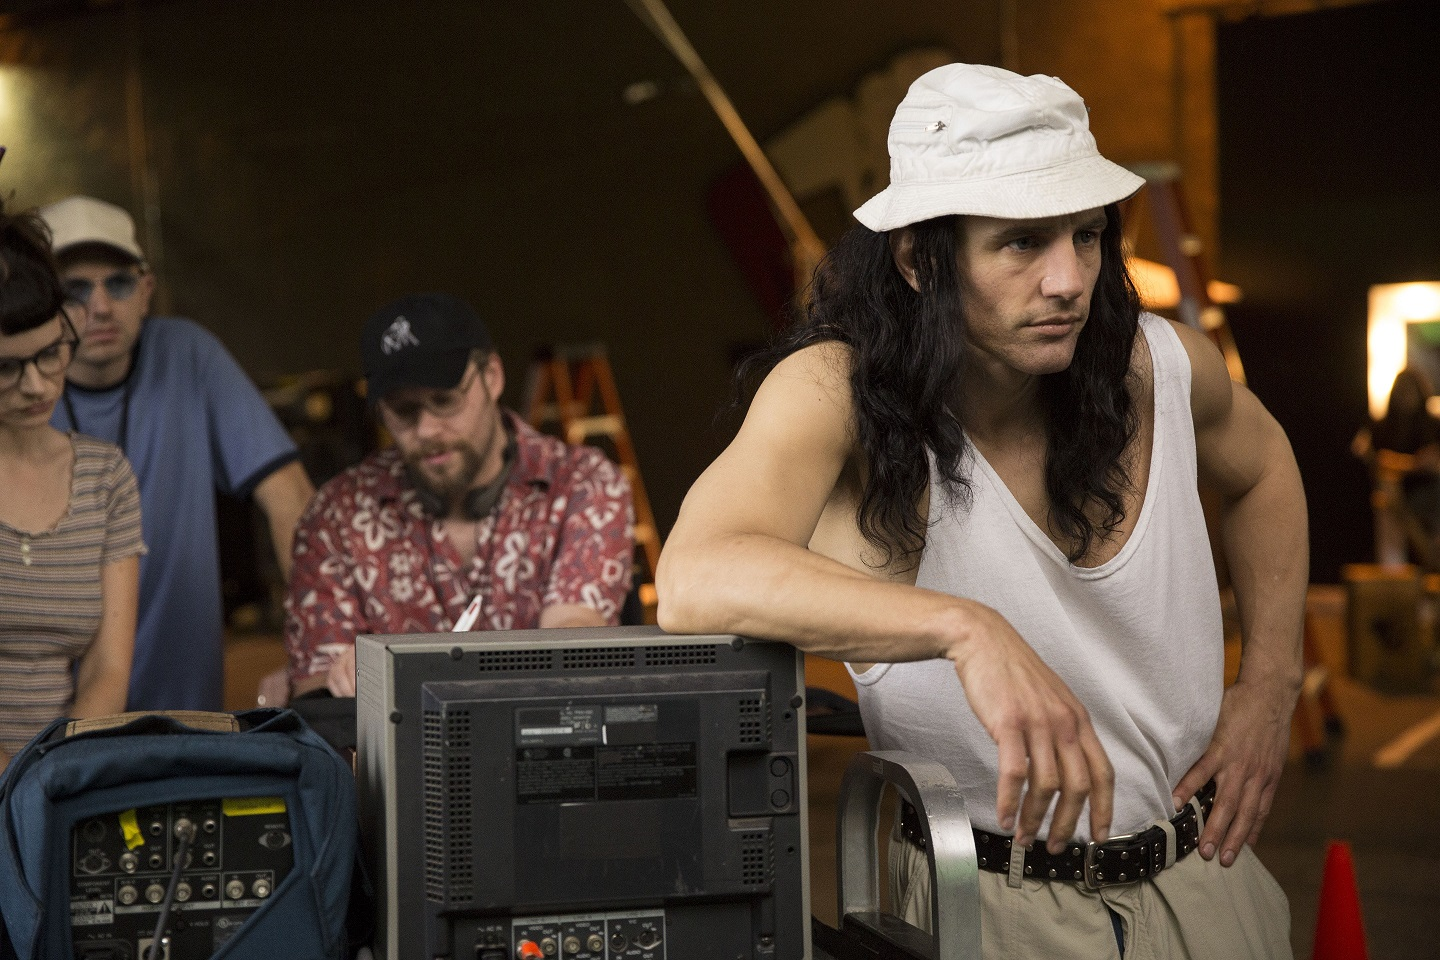 Hollywood hotshot James Franco is the creator of the celebrated film 'The Disaster Artist'.